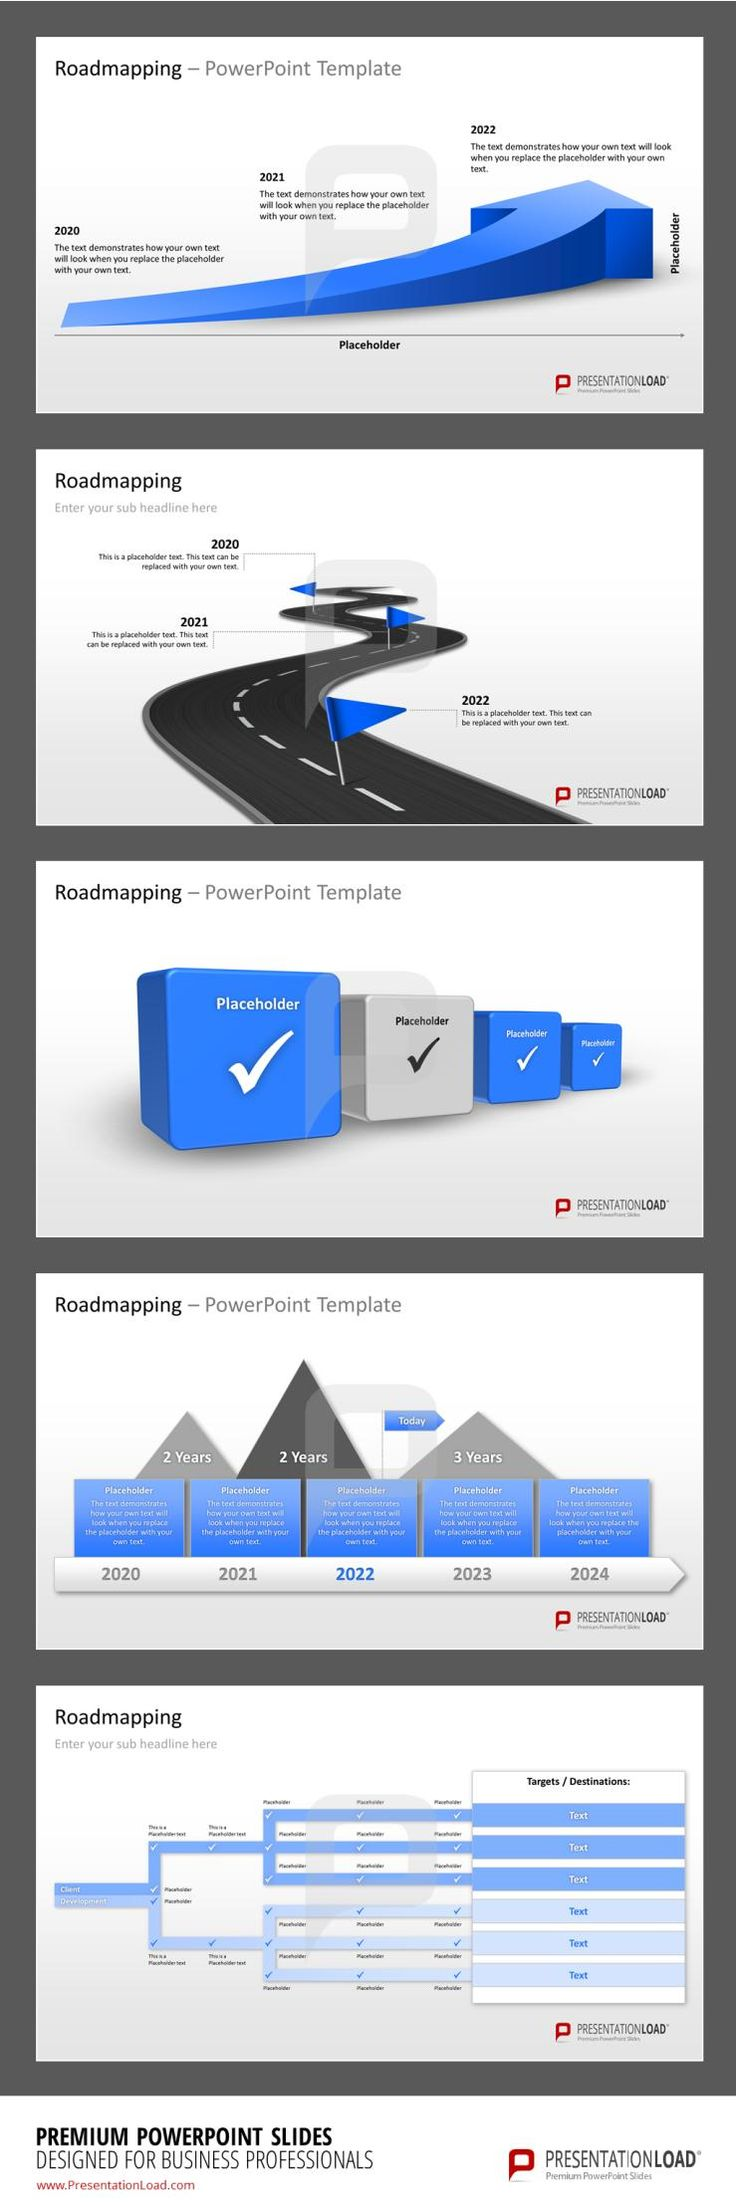 Roadmap PowerPoint Templates  #presentationload  http://www.presentationload.com/roadmapping-1.html